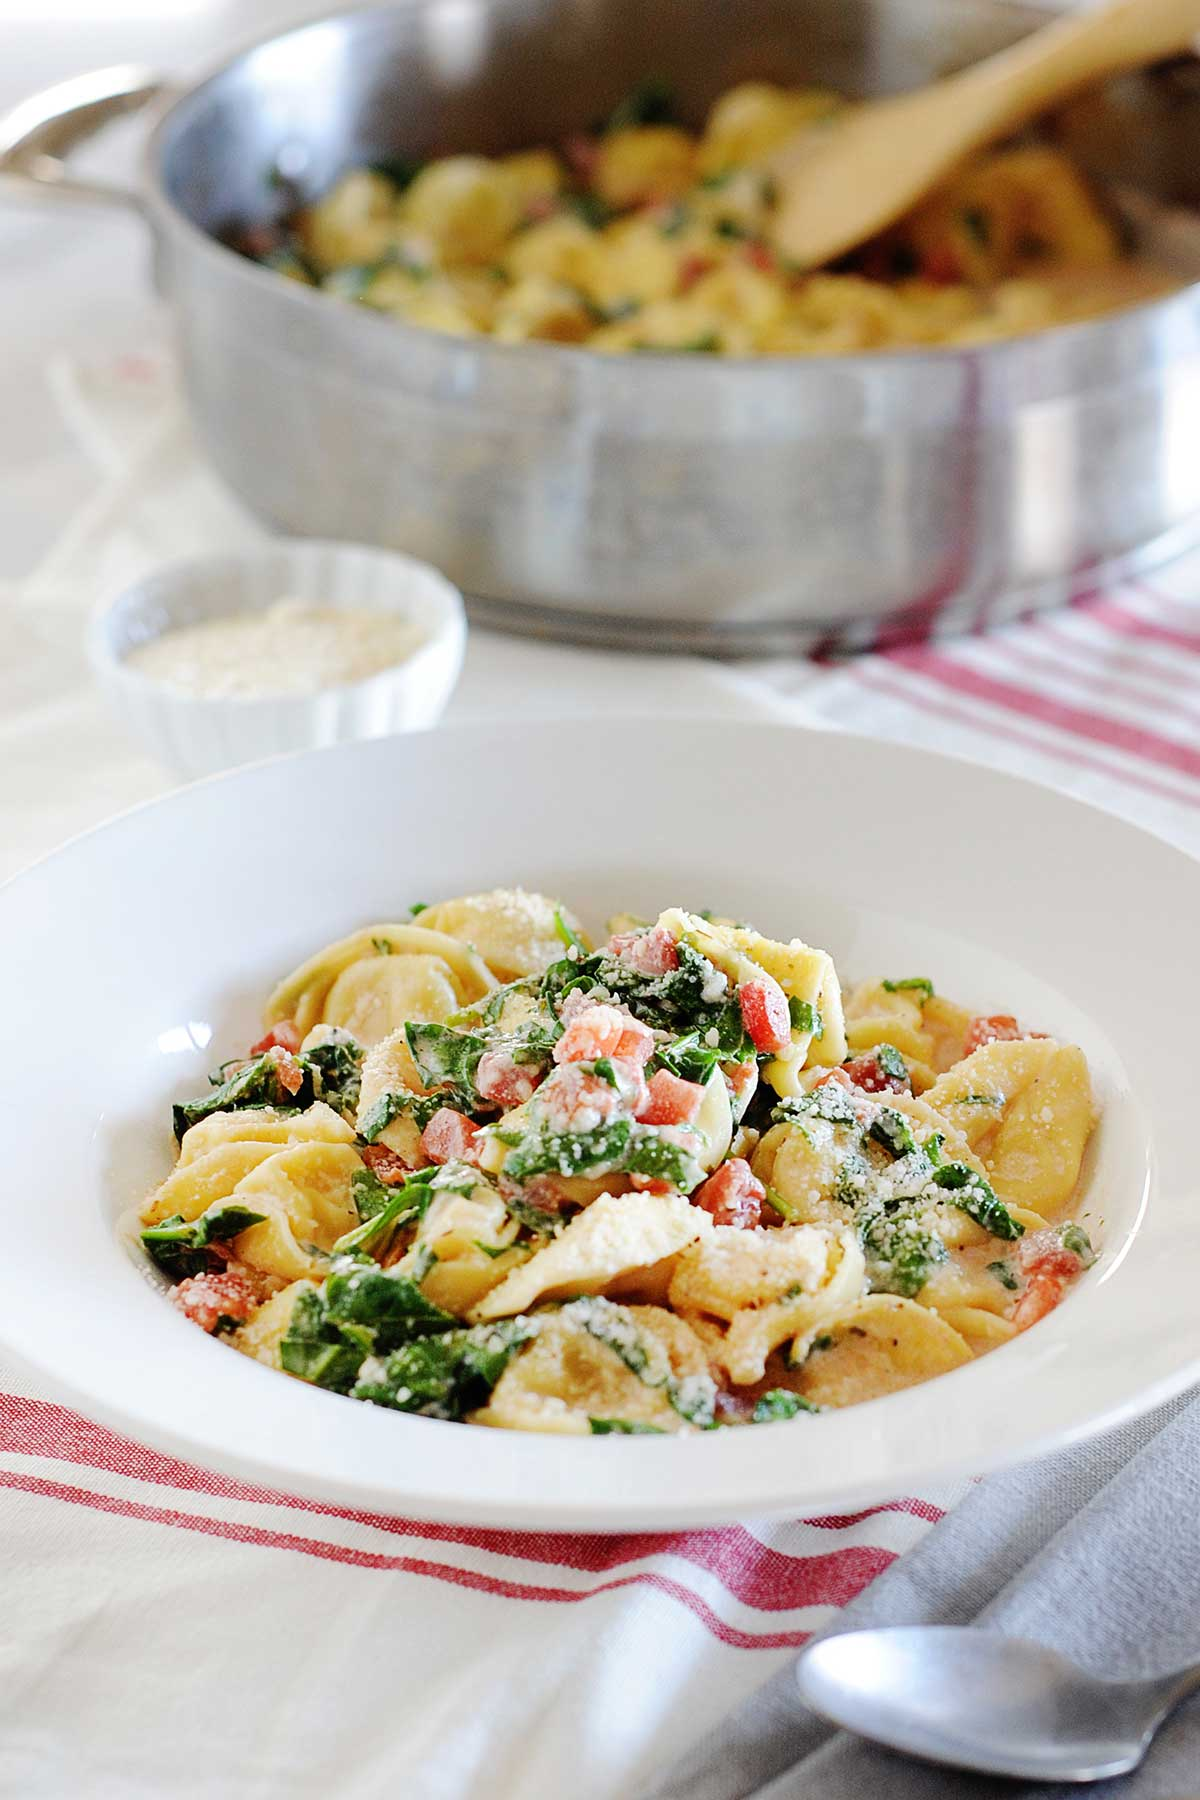 large bowl of spinach tortellini with large skillet of the same in the background of image